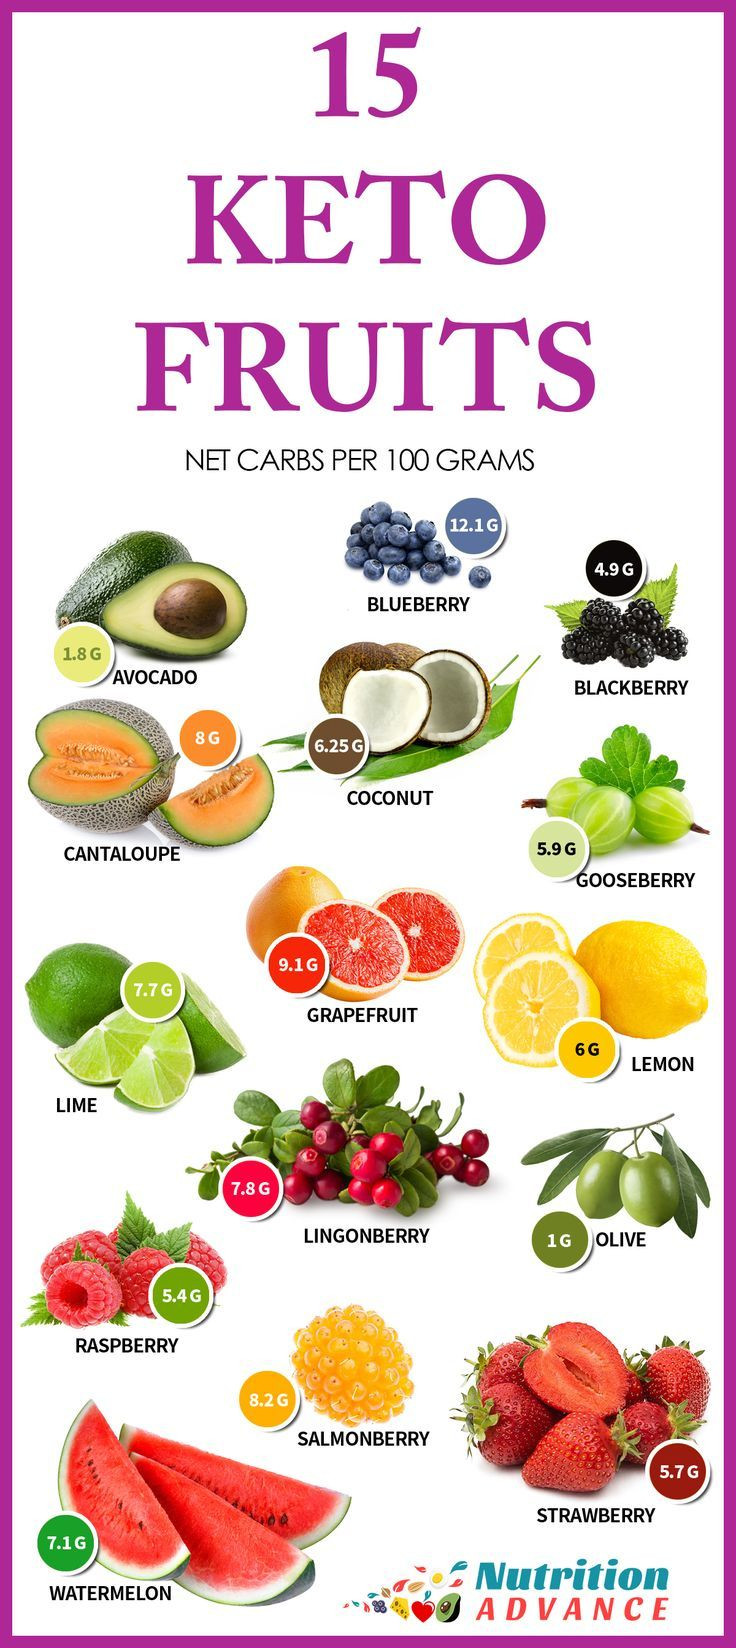 Keto Diet Snacks Fruit  The 15 Best Low Carb Fruits